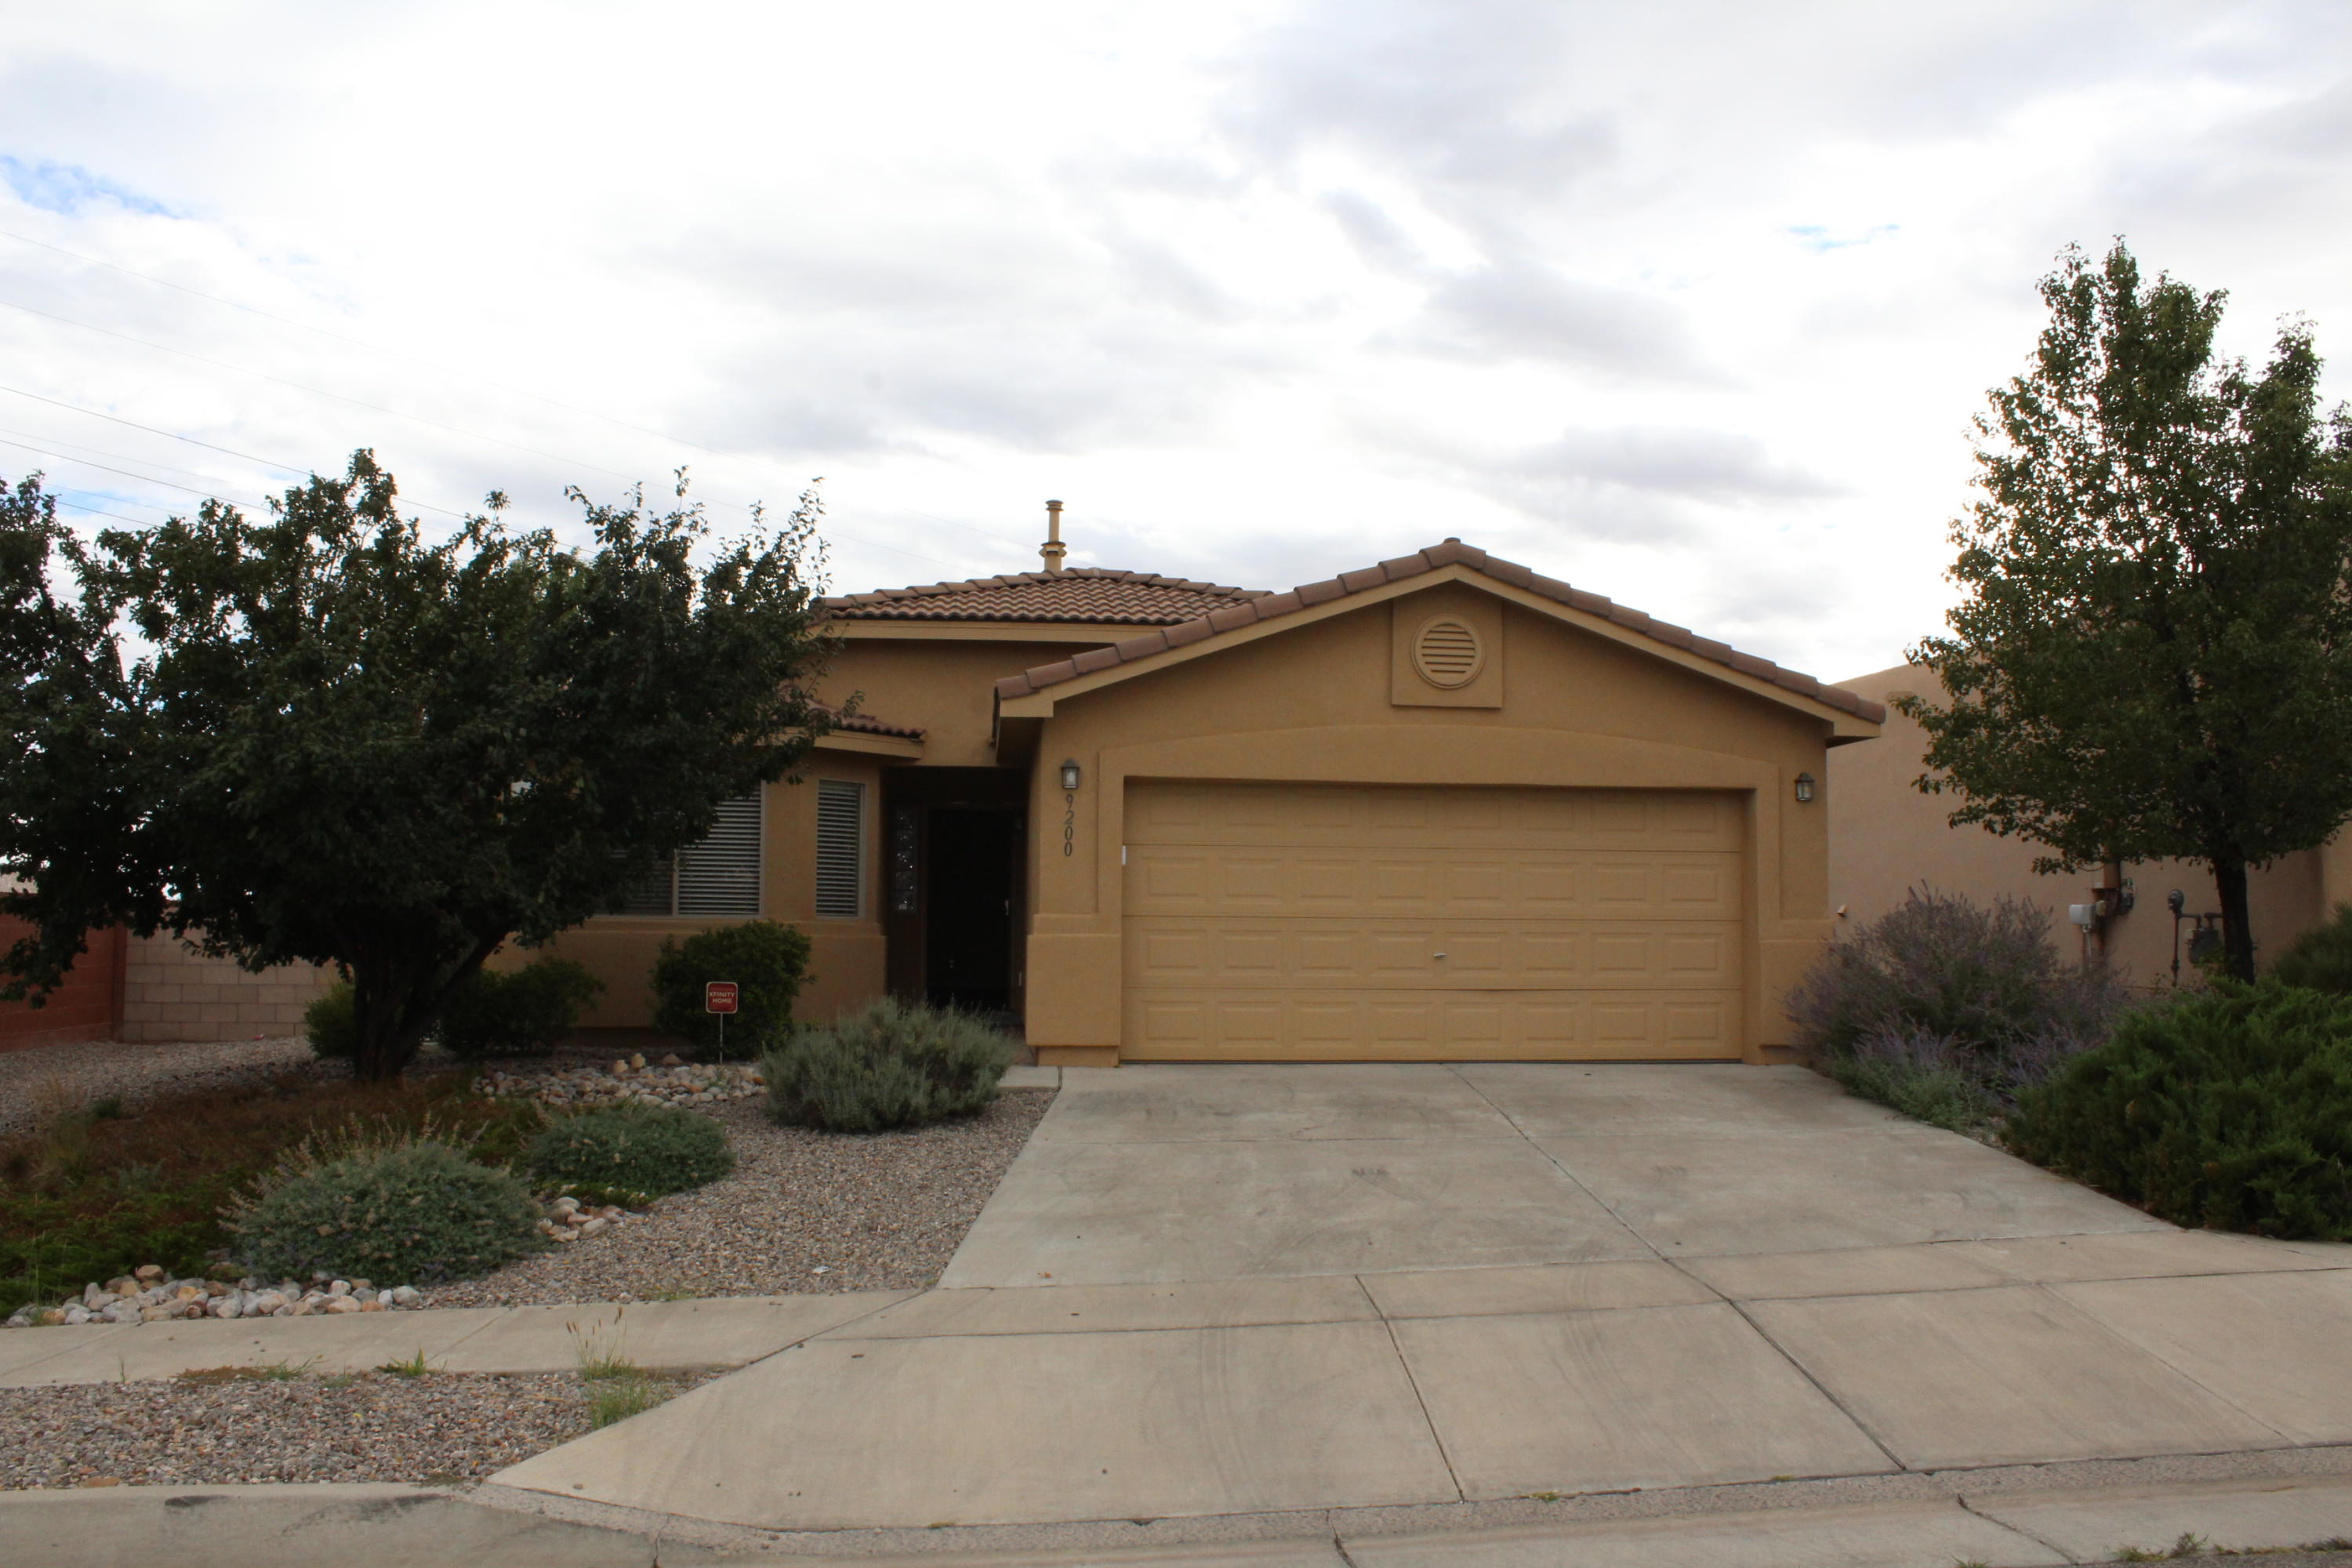 9200 NW Cinder Place, Northwest Albuquerque and Northwest Heights, New Mexico